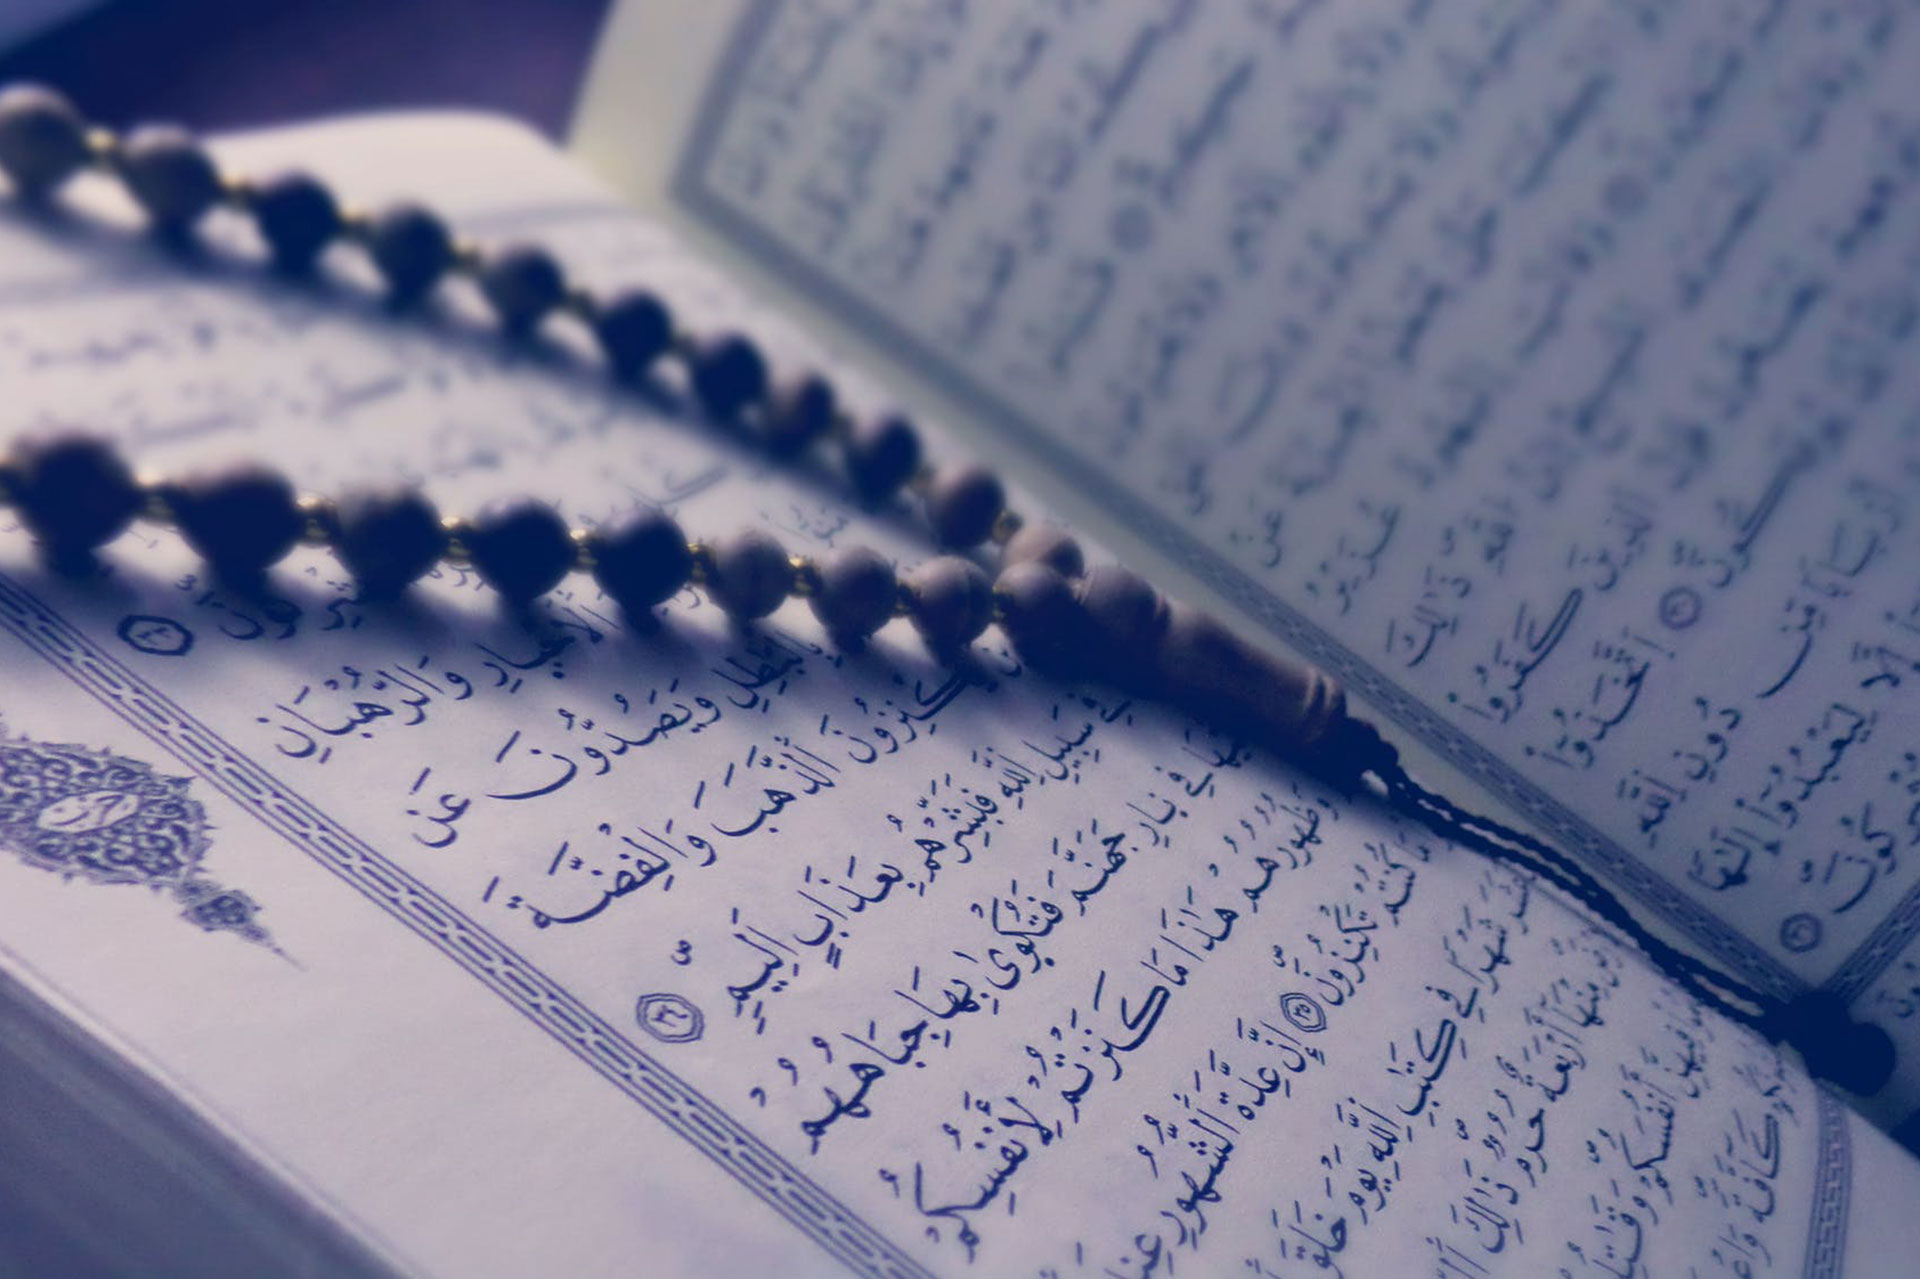 Qur'anophobia: The Core Truth of Islamophobia